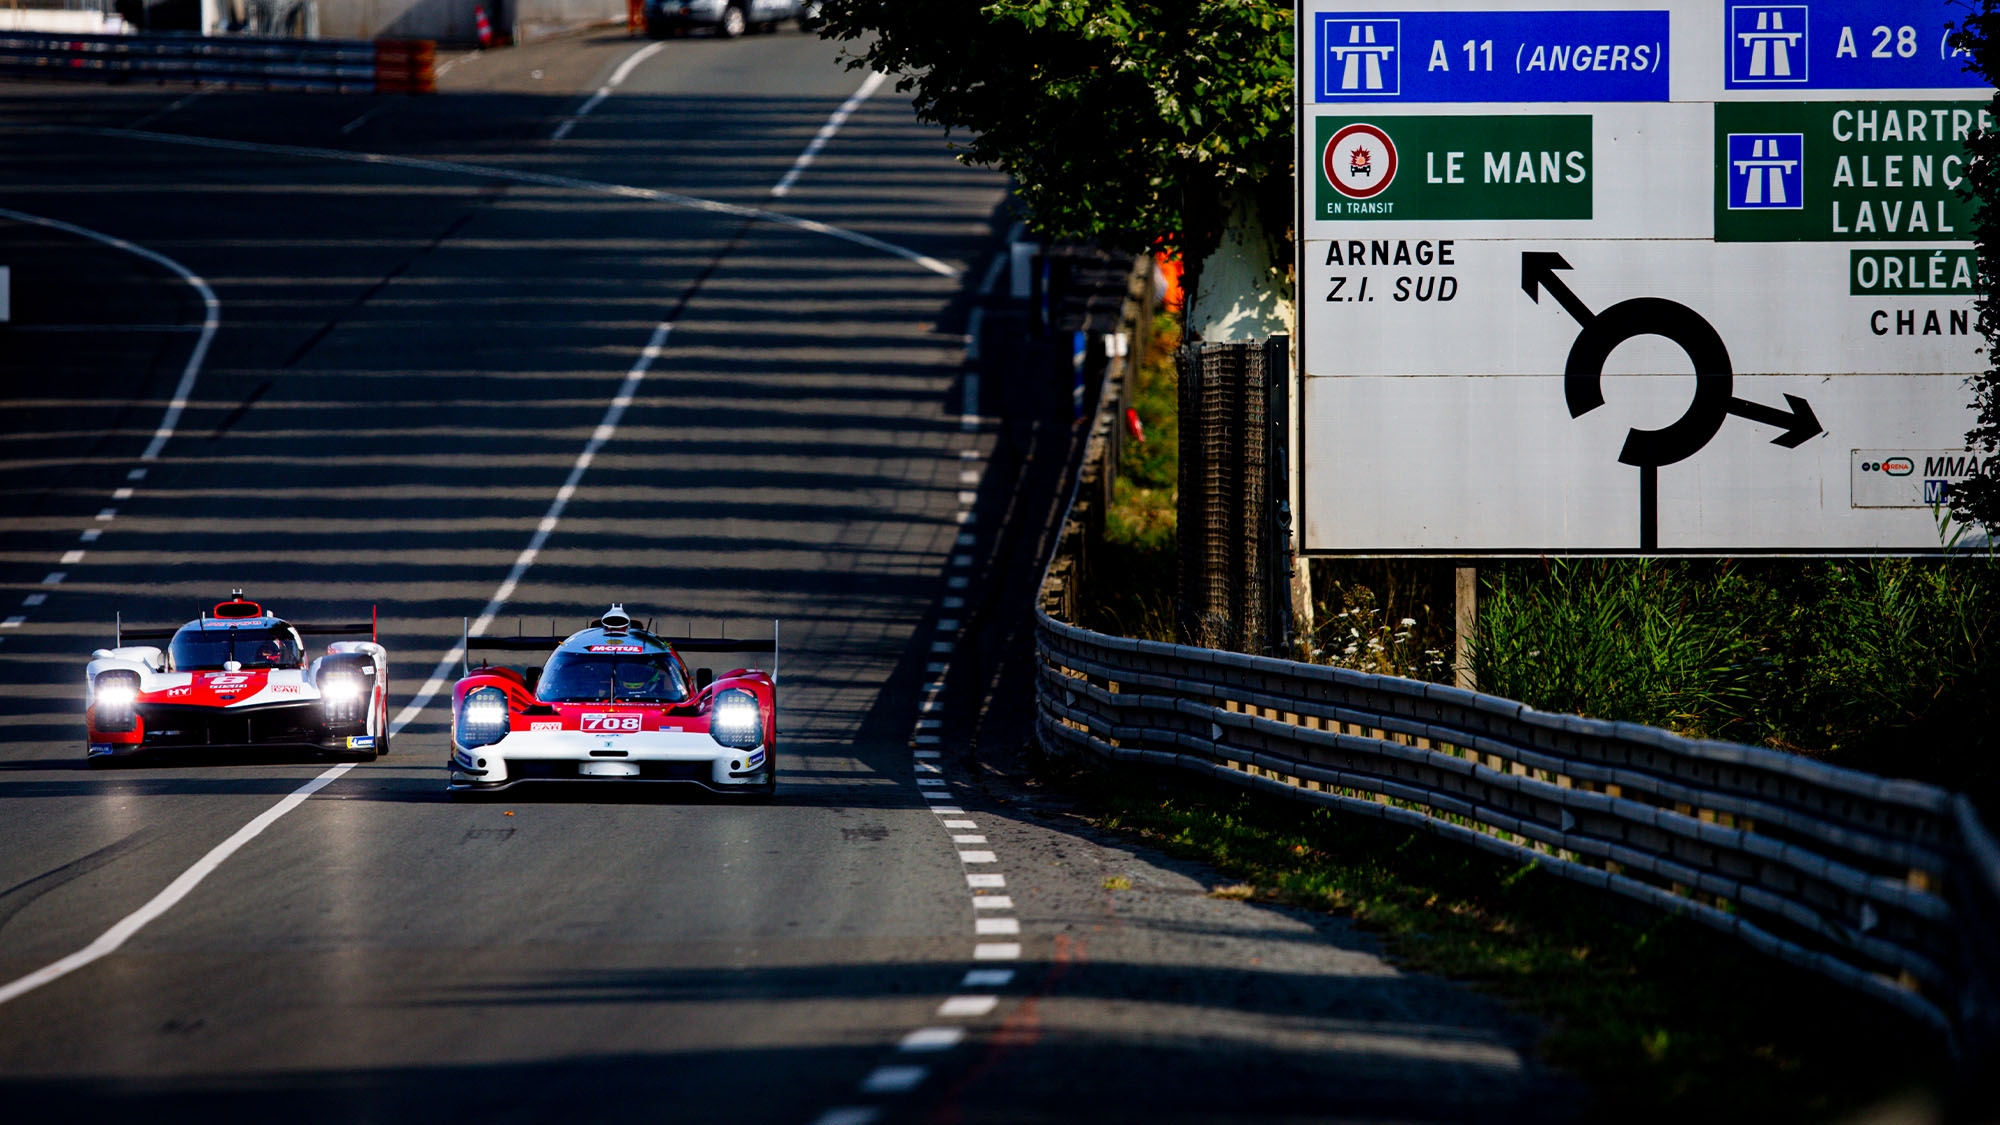 708 Derani Pipo (bra), Mailleux Franck (fra), Pla Olivier (fra), Glickenhaus Racing, Glickenhaus 007 LMH, action during the Le Mans test day prior the 4th round of the 2021 FIA World Endurance Championship, FIA WEC, on the Circuit de la Sarthe, on August 15, 2021 in Le Mans, France - Photo Joao Filipe / DPPI